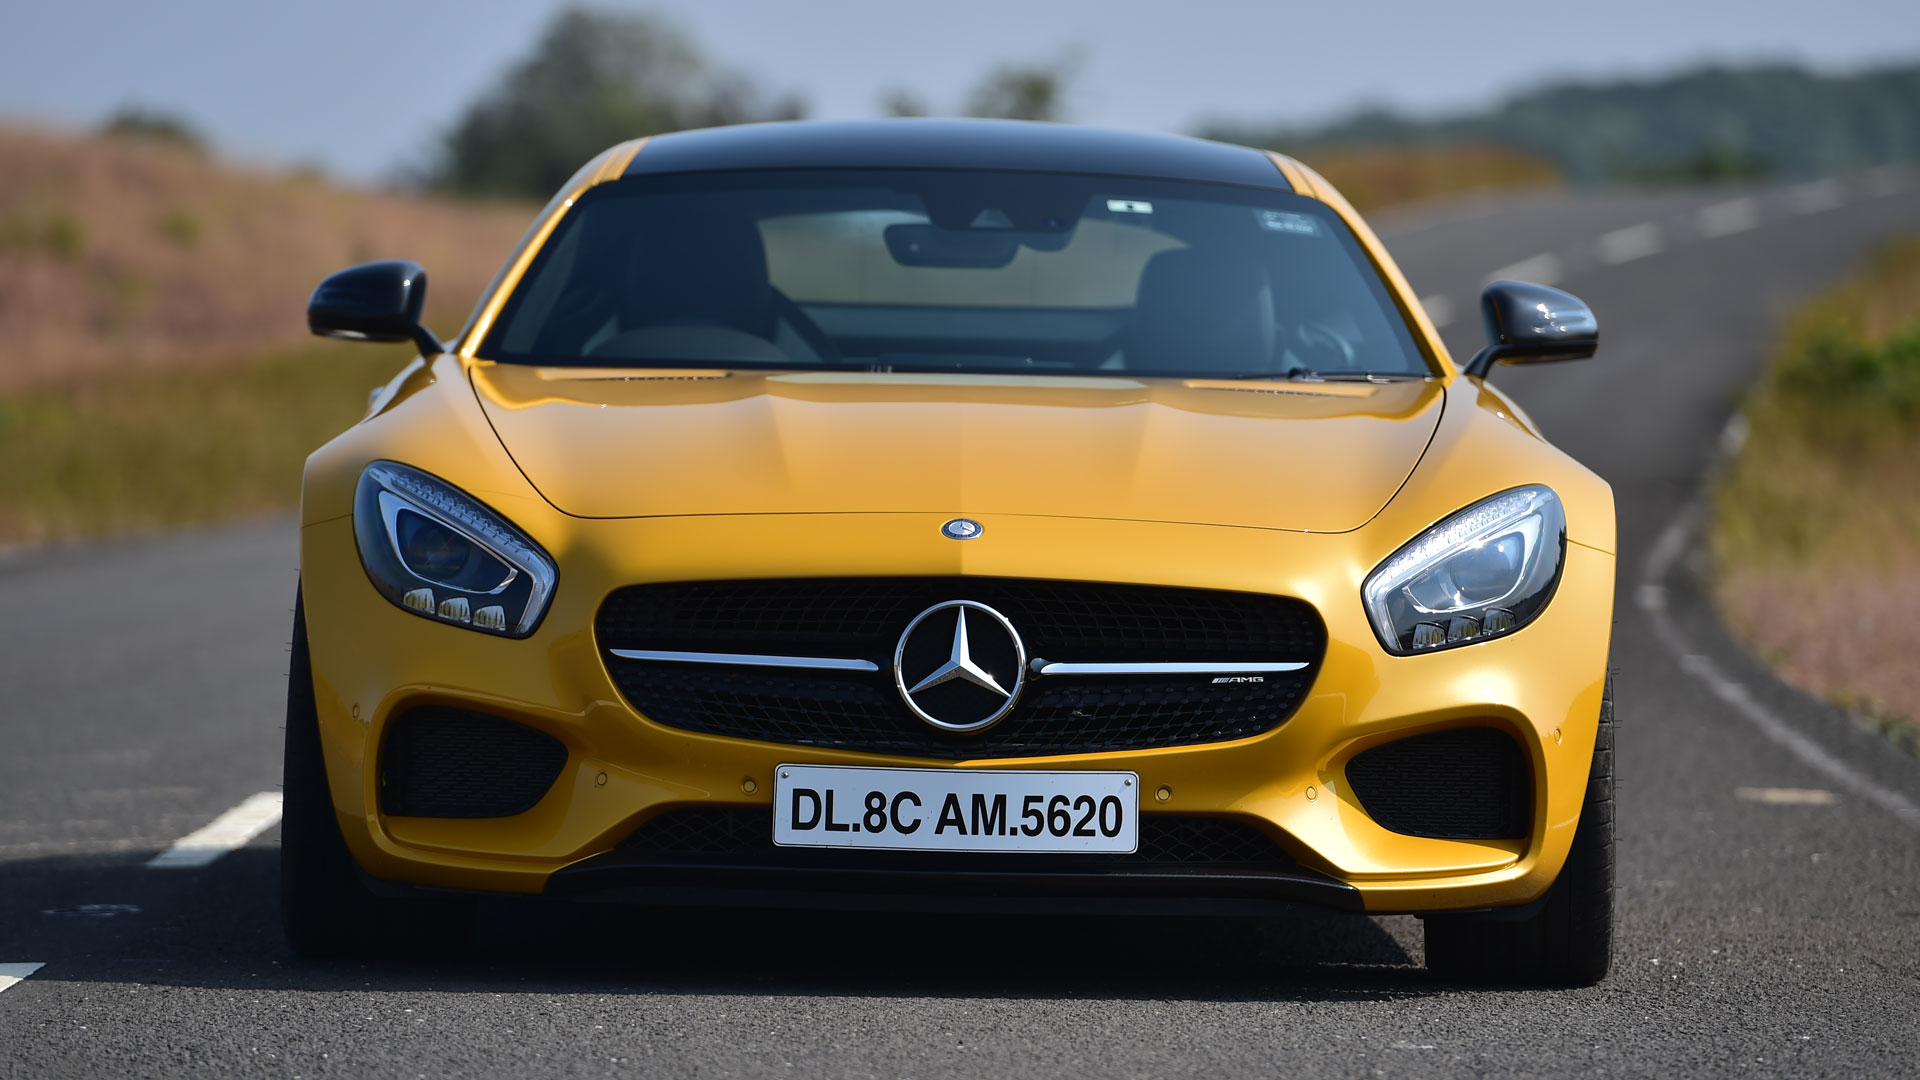 Mercedes benz AMG GT 2015 S Compare